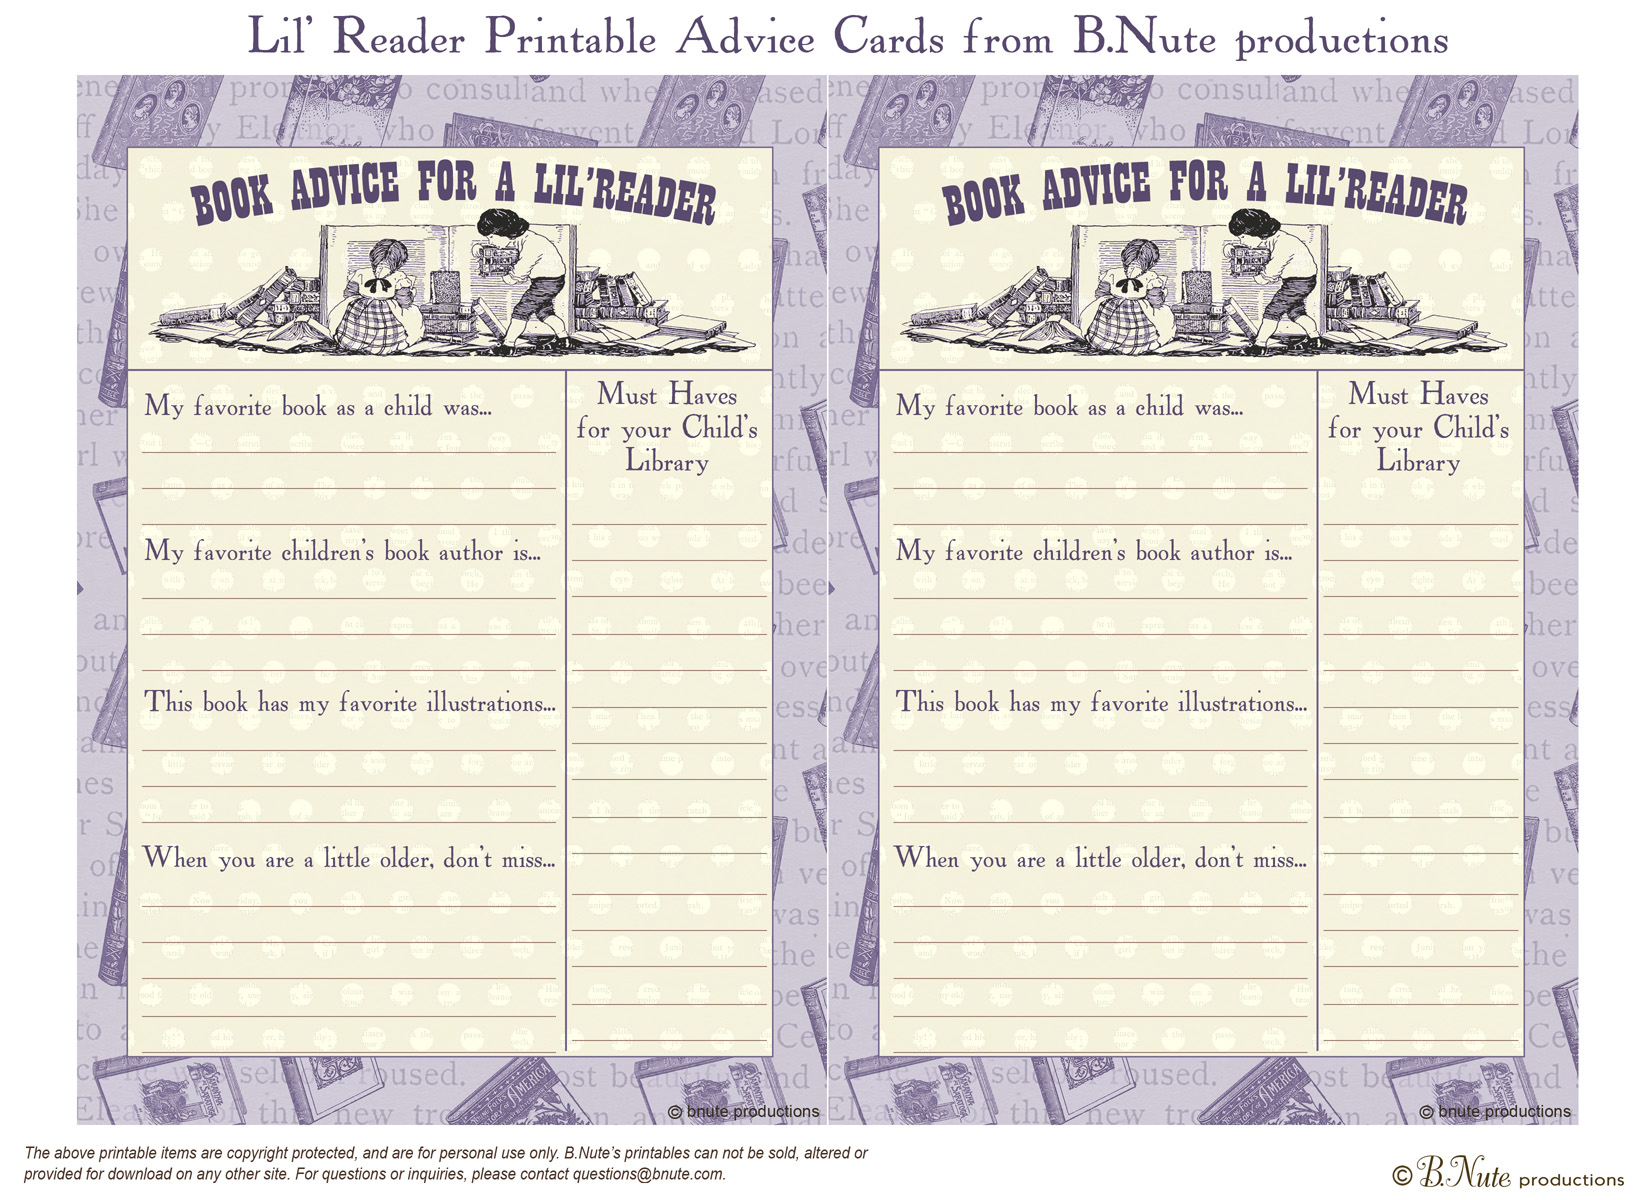 picture about Free Printable Bridal Shower Advice Cards known as bnute productions: Free of charge Printable LilReader Reserve Suggestions Card